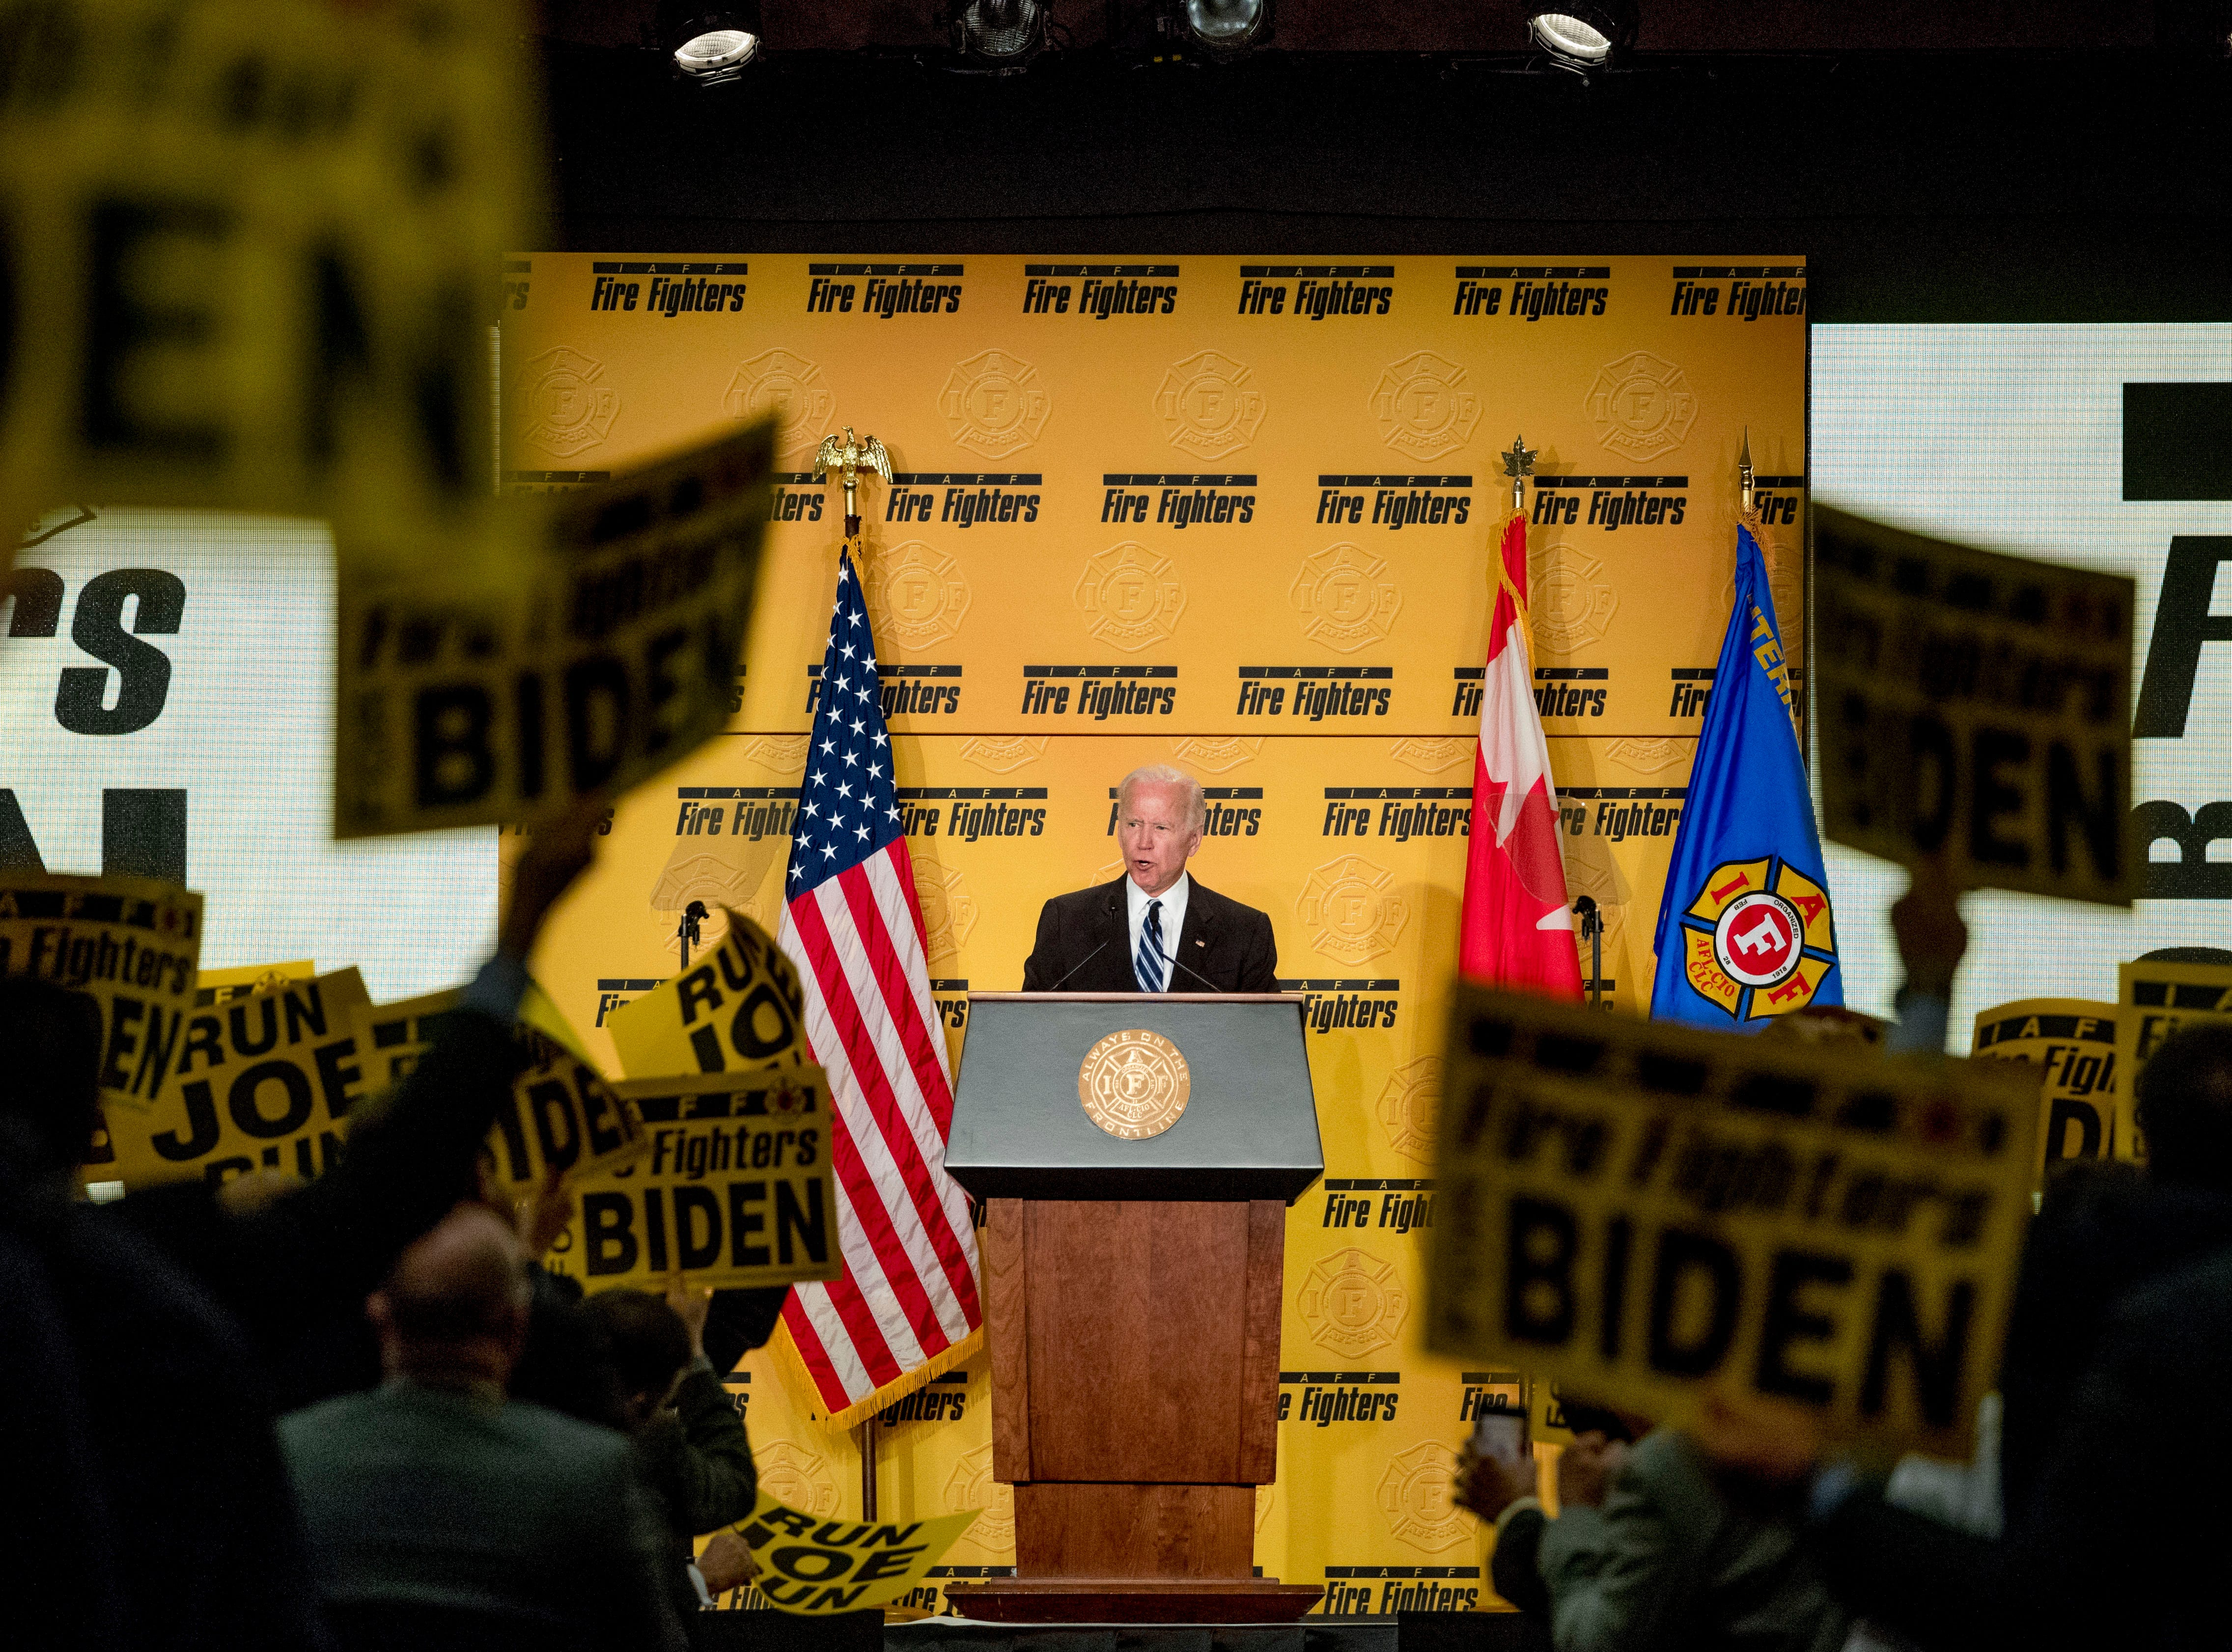 Former Vice President Joe Biden speaks to the International Association of Firefighters at the Hyatt Regency on Capitol Hill in Washington, Tuesday, March 12, 2019, amid growing expectations he'll soon announce he's running for president. (AP Photo/Andrew Harnik)